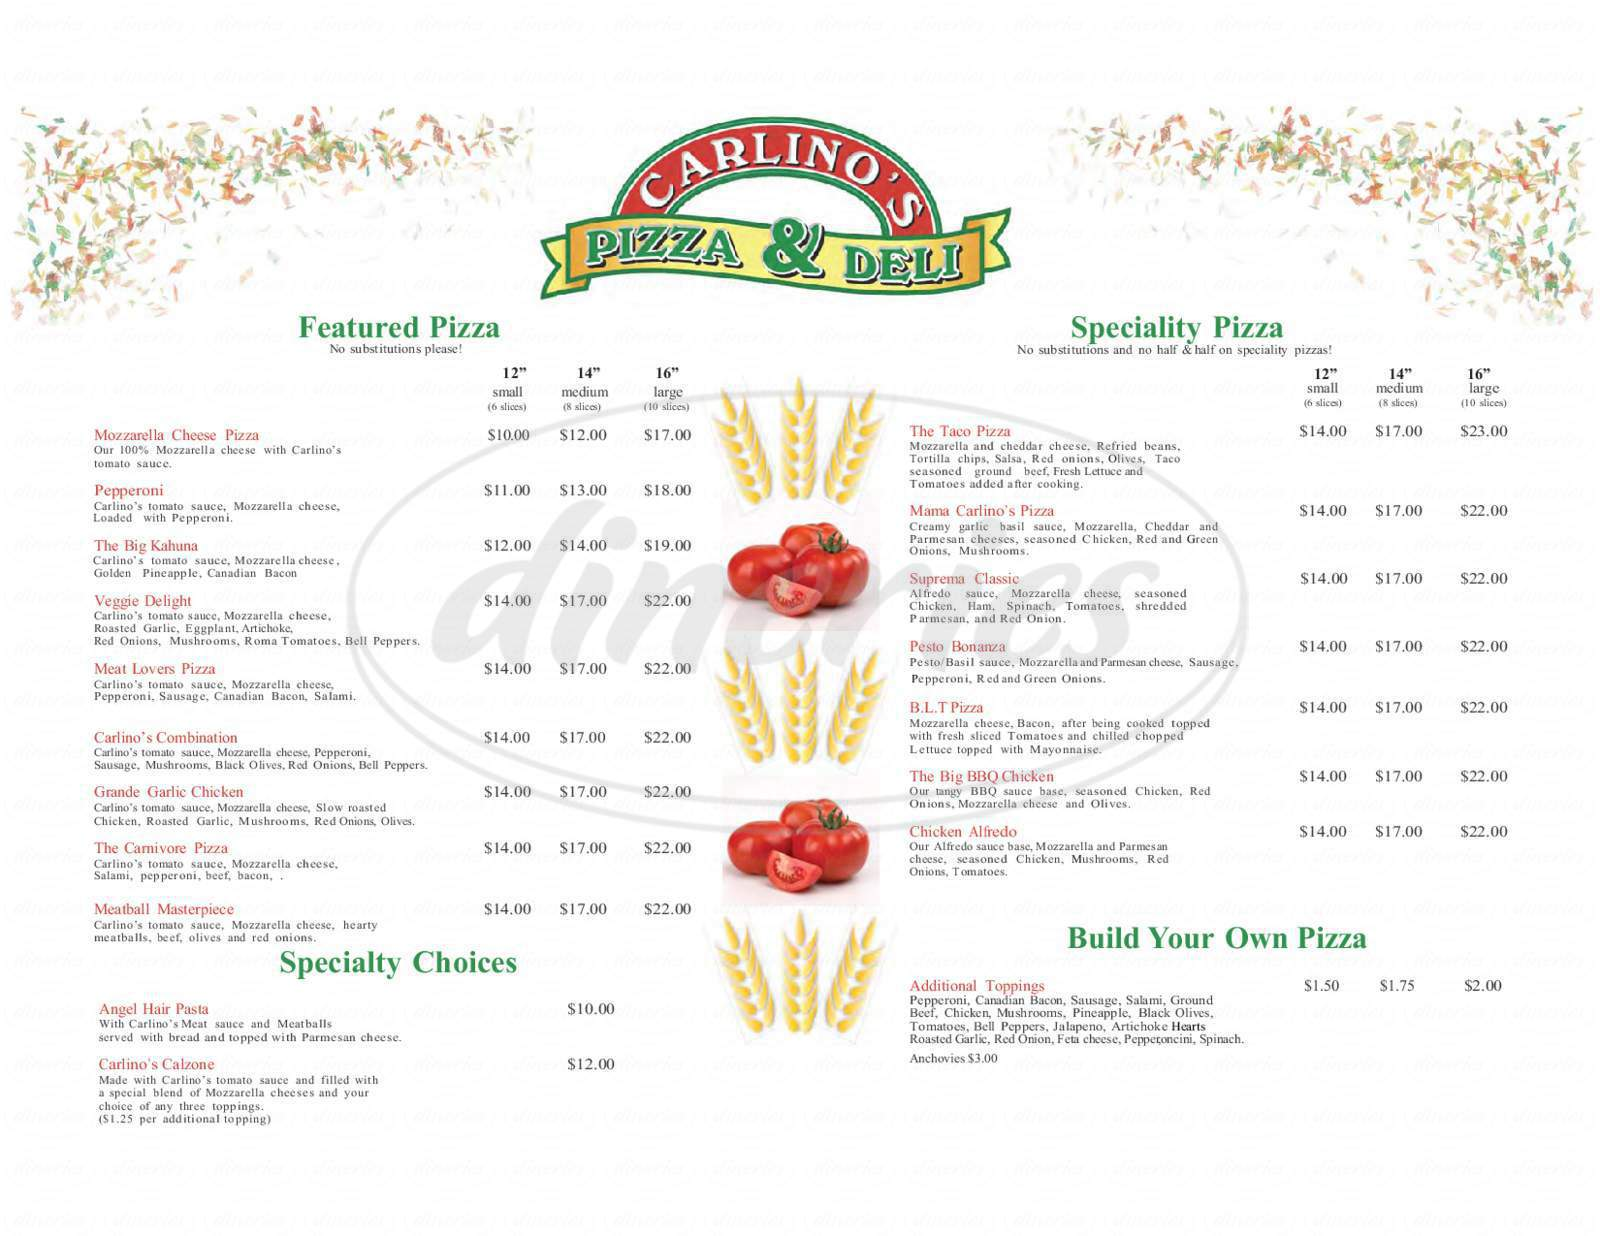 menu for Carlino's Pizza & Deli